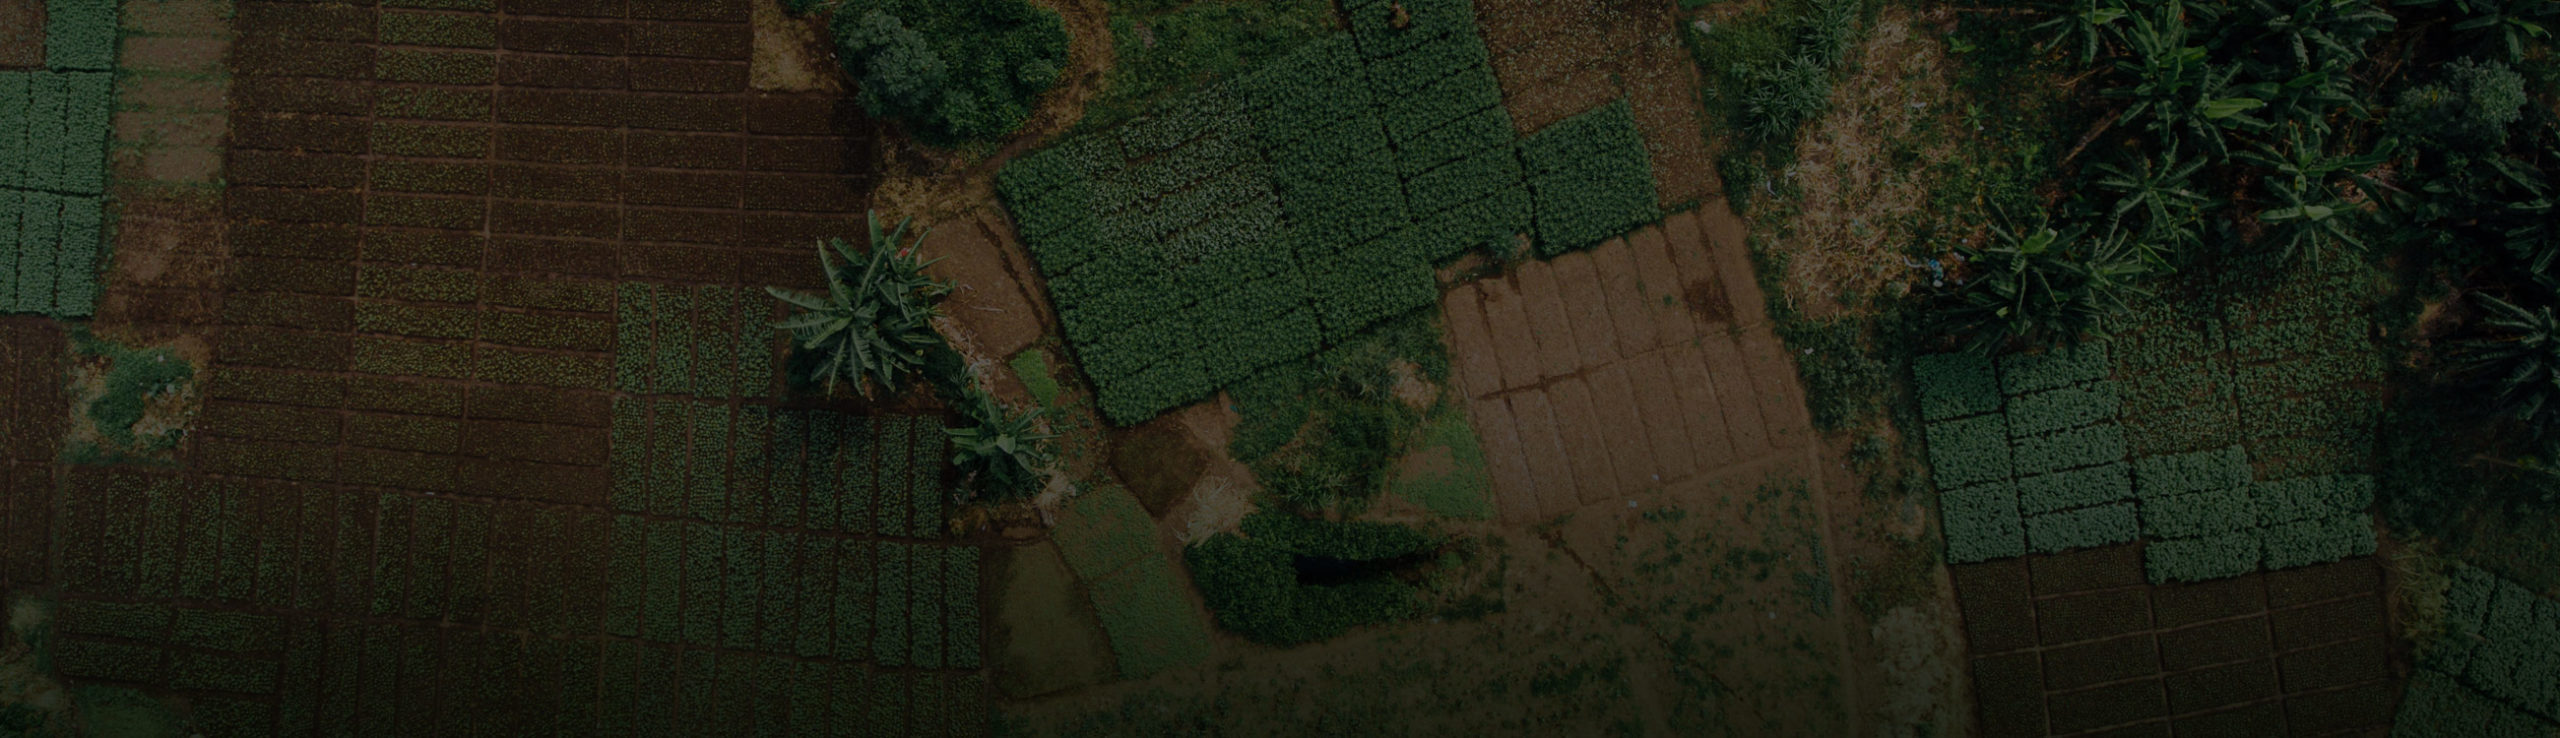 Aerial view of smallholder farm in Africa showing plantation plots for various crops